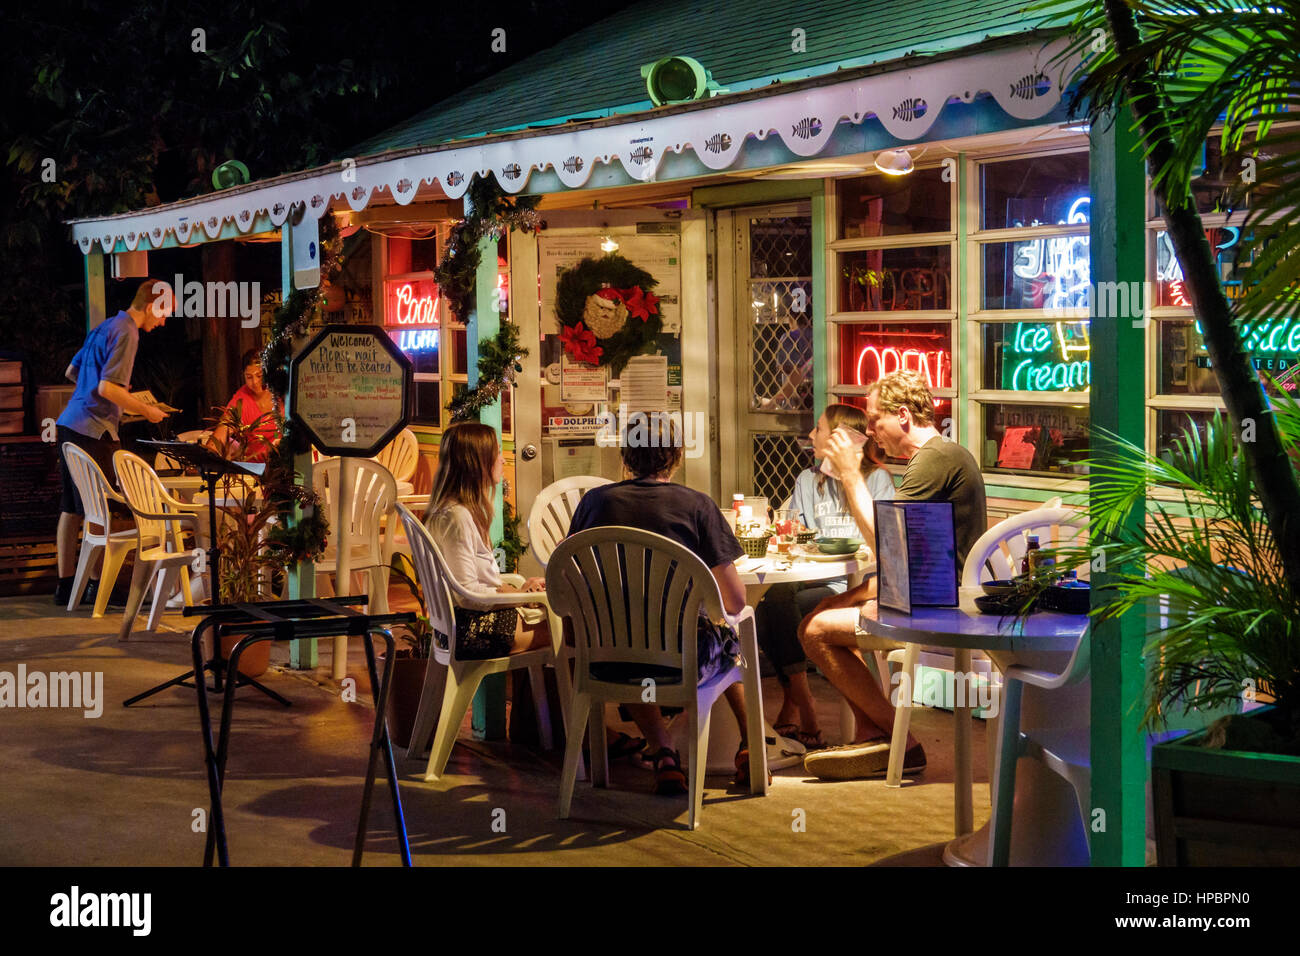 Key Largo Floride Florida Keys supérieure Mme Mac's Cuisine restaurant fruits de mer en plein air salle Photo Stock